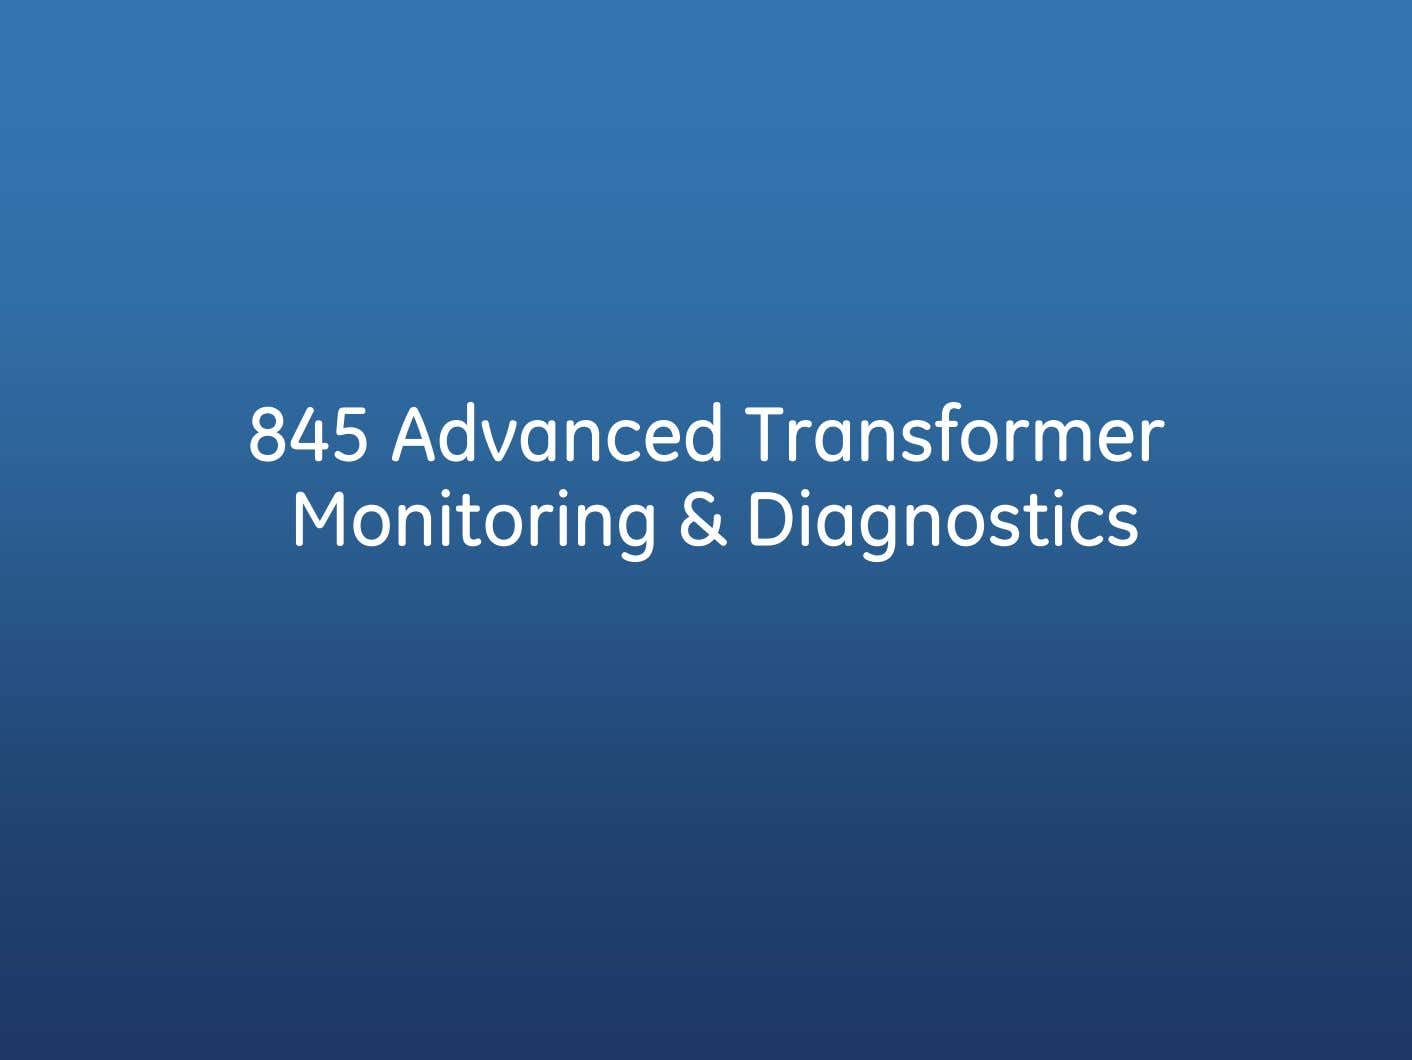 845 Advanced Transformer Monitoring & Diagnostics